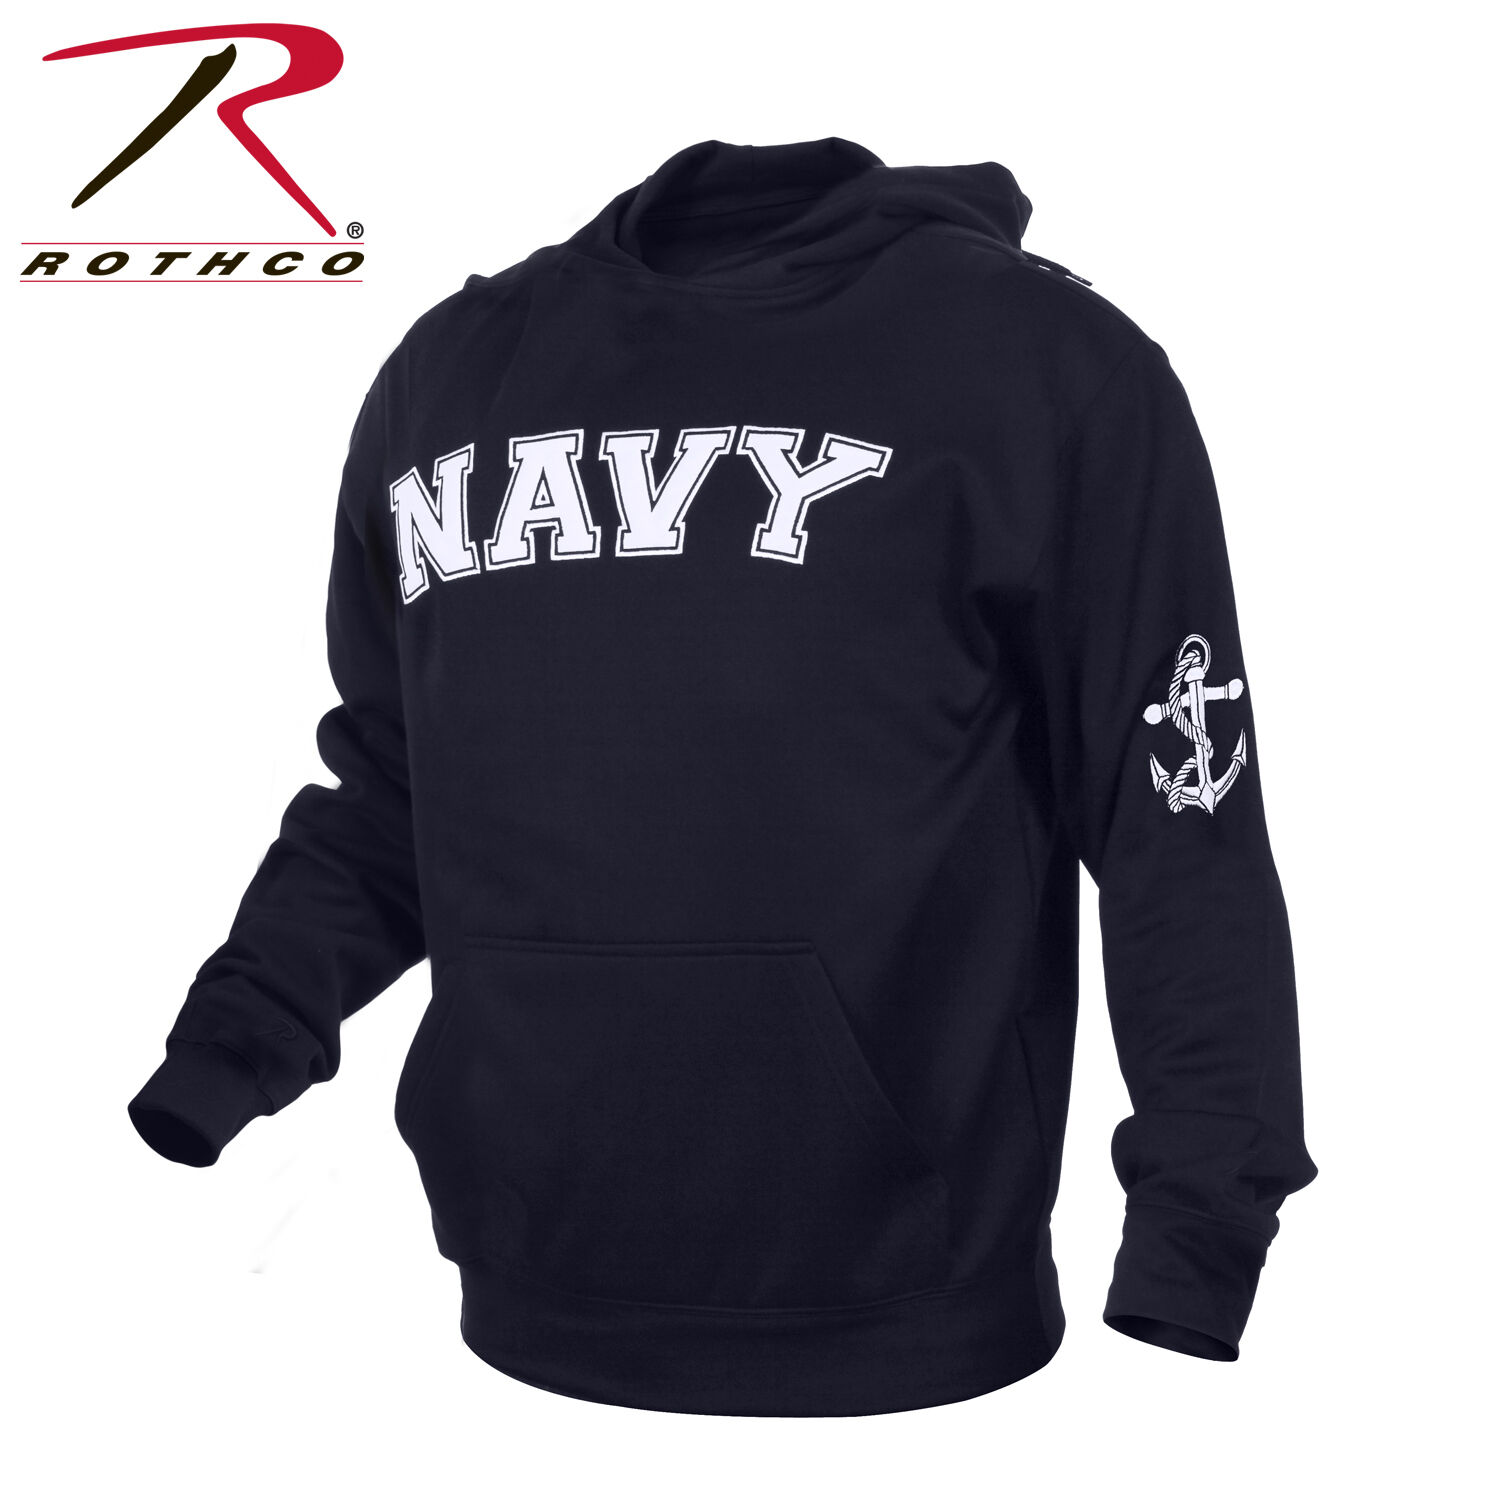 Rothco 2057 Military EmbroideROT Pullover Hoodies - Navy Blau